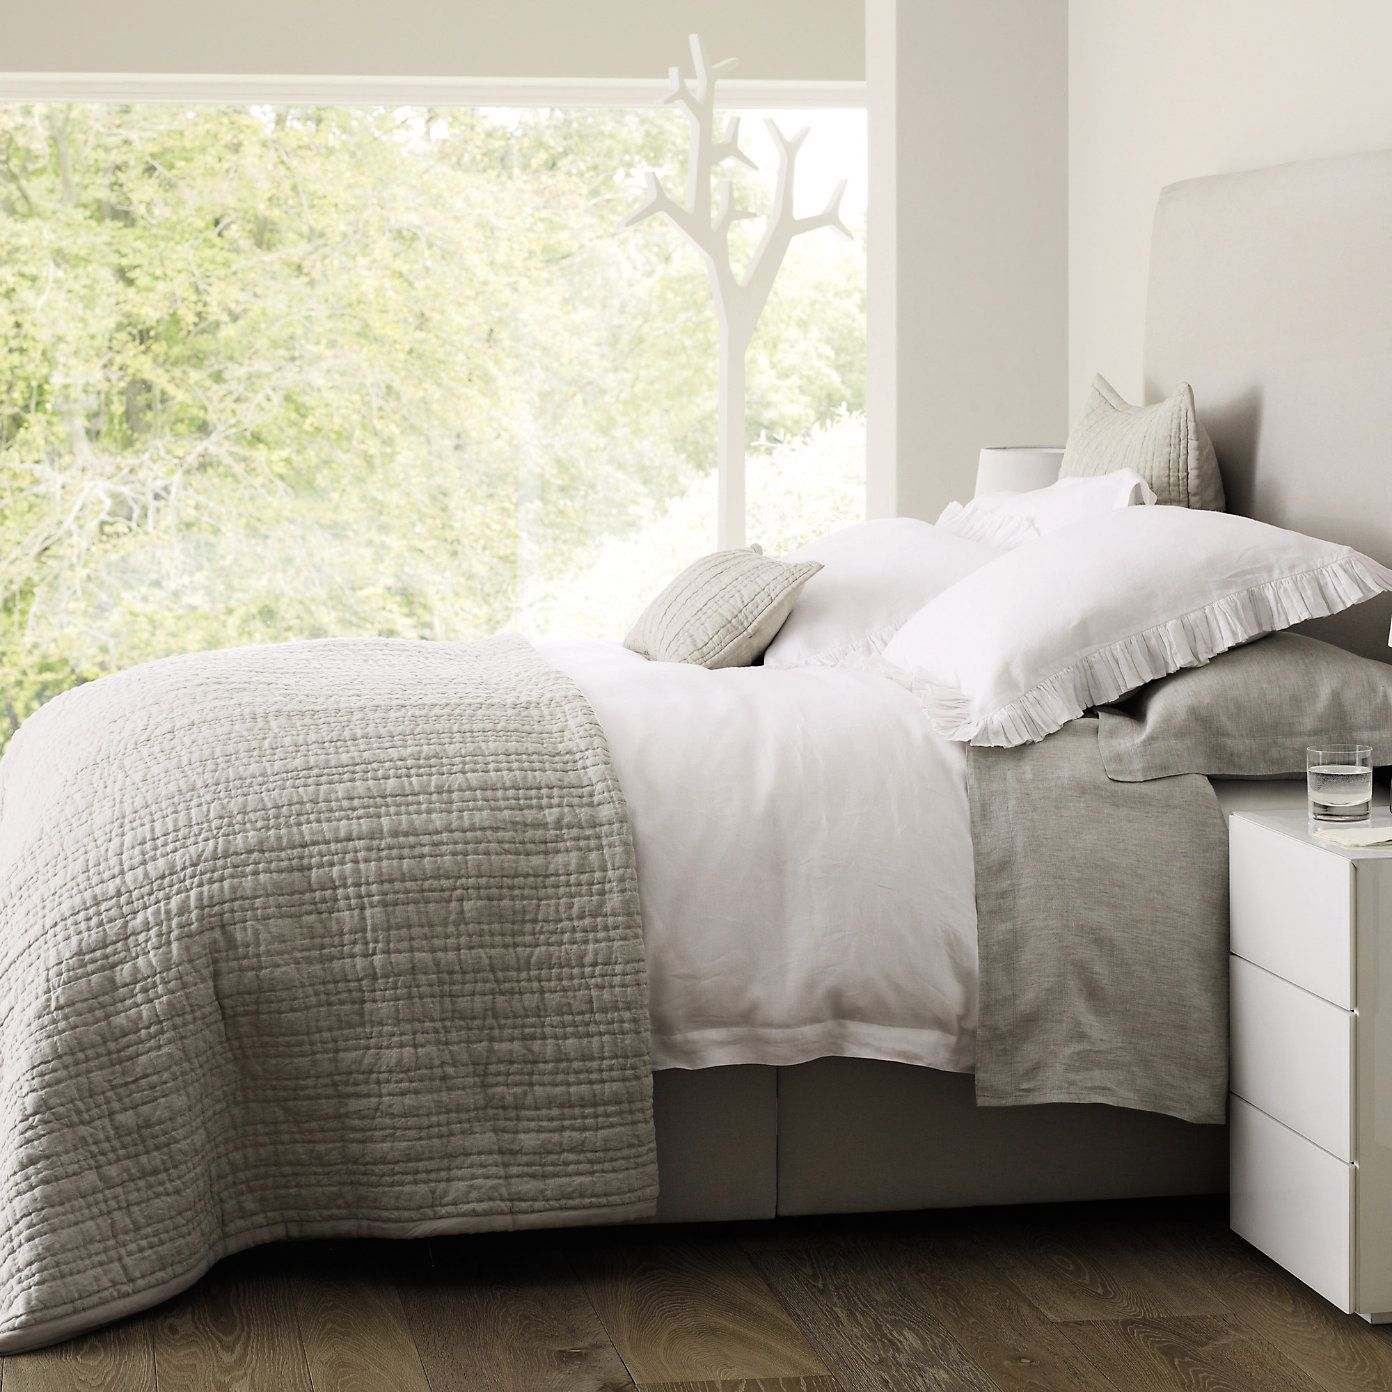 Where does joanna gaines buy her bedding - Buy Bedroom Bedspreads Cushions Oslo Bedspread From The White Company